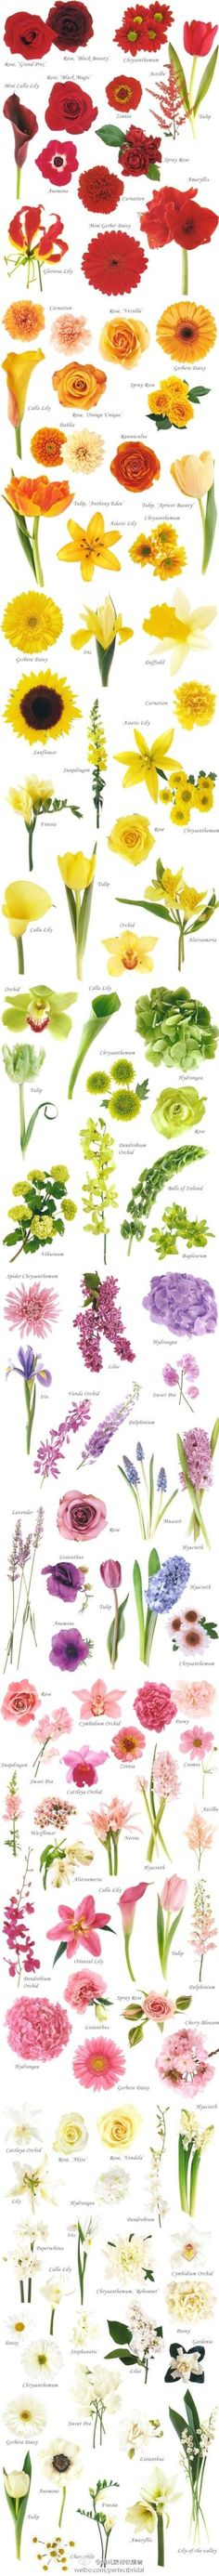 Flower pictures with names